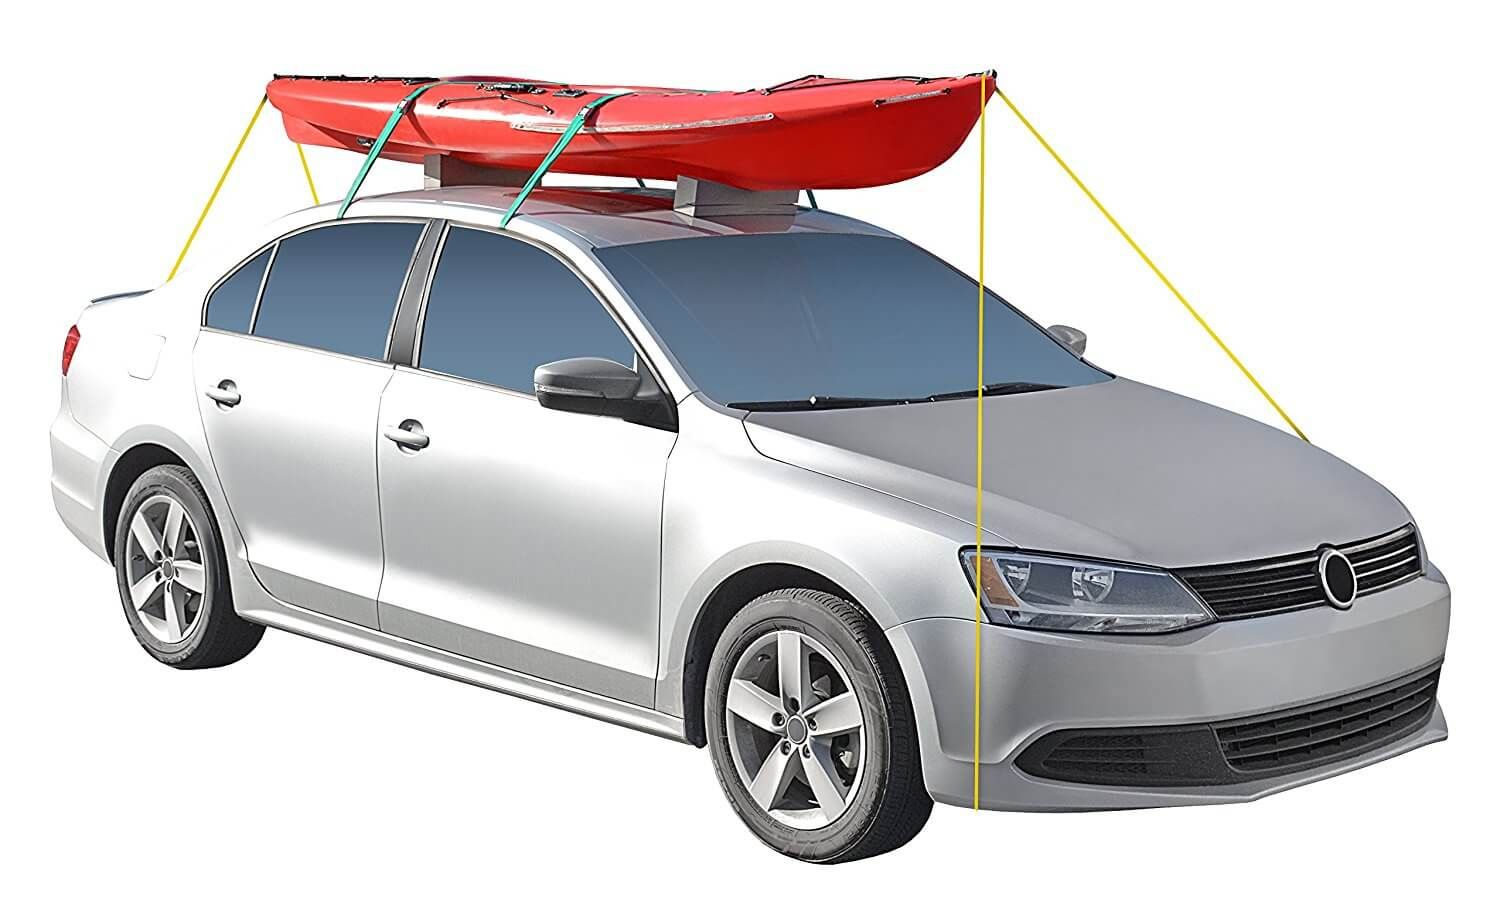 How To Strap Kayak Car Without Roof Rack In 2020 Roof Rack Car Roof Racks Car